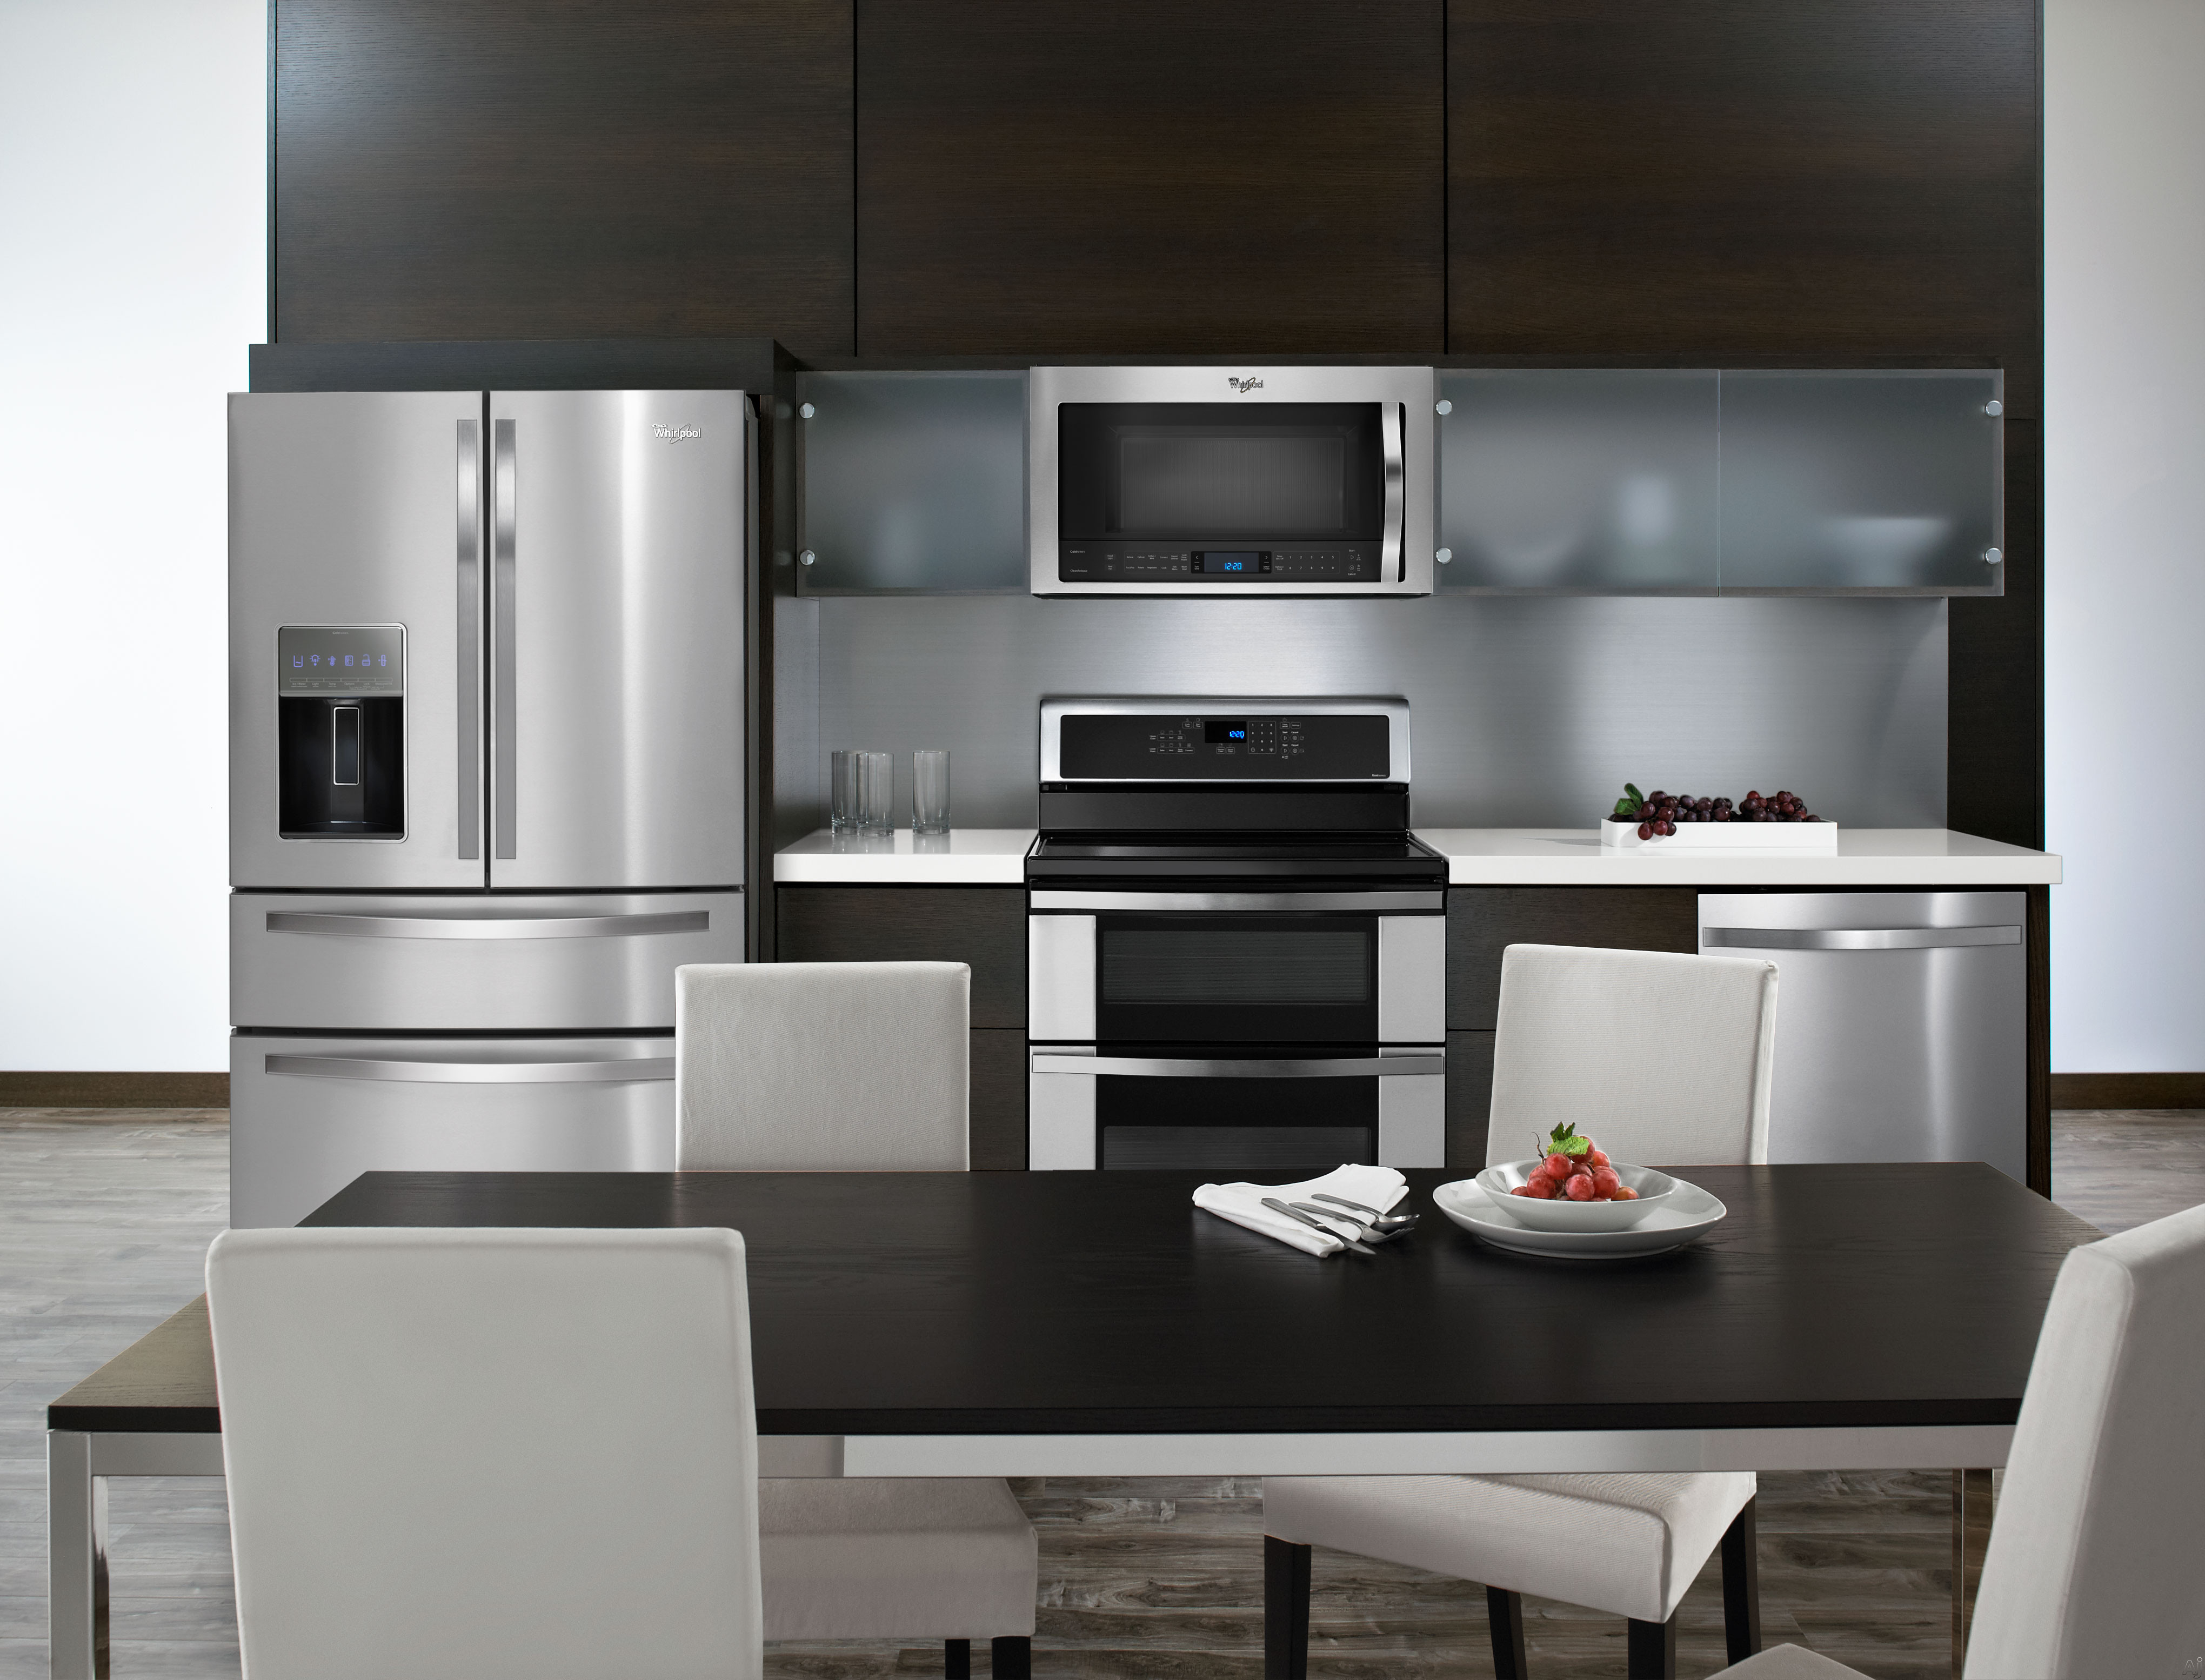 whirlpool wmh76719cs 1 9 cu ft over the range microwave. Black Bedroom Furniture Sets. Home Design Ideas